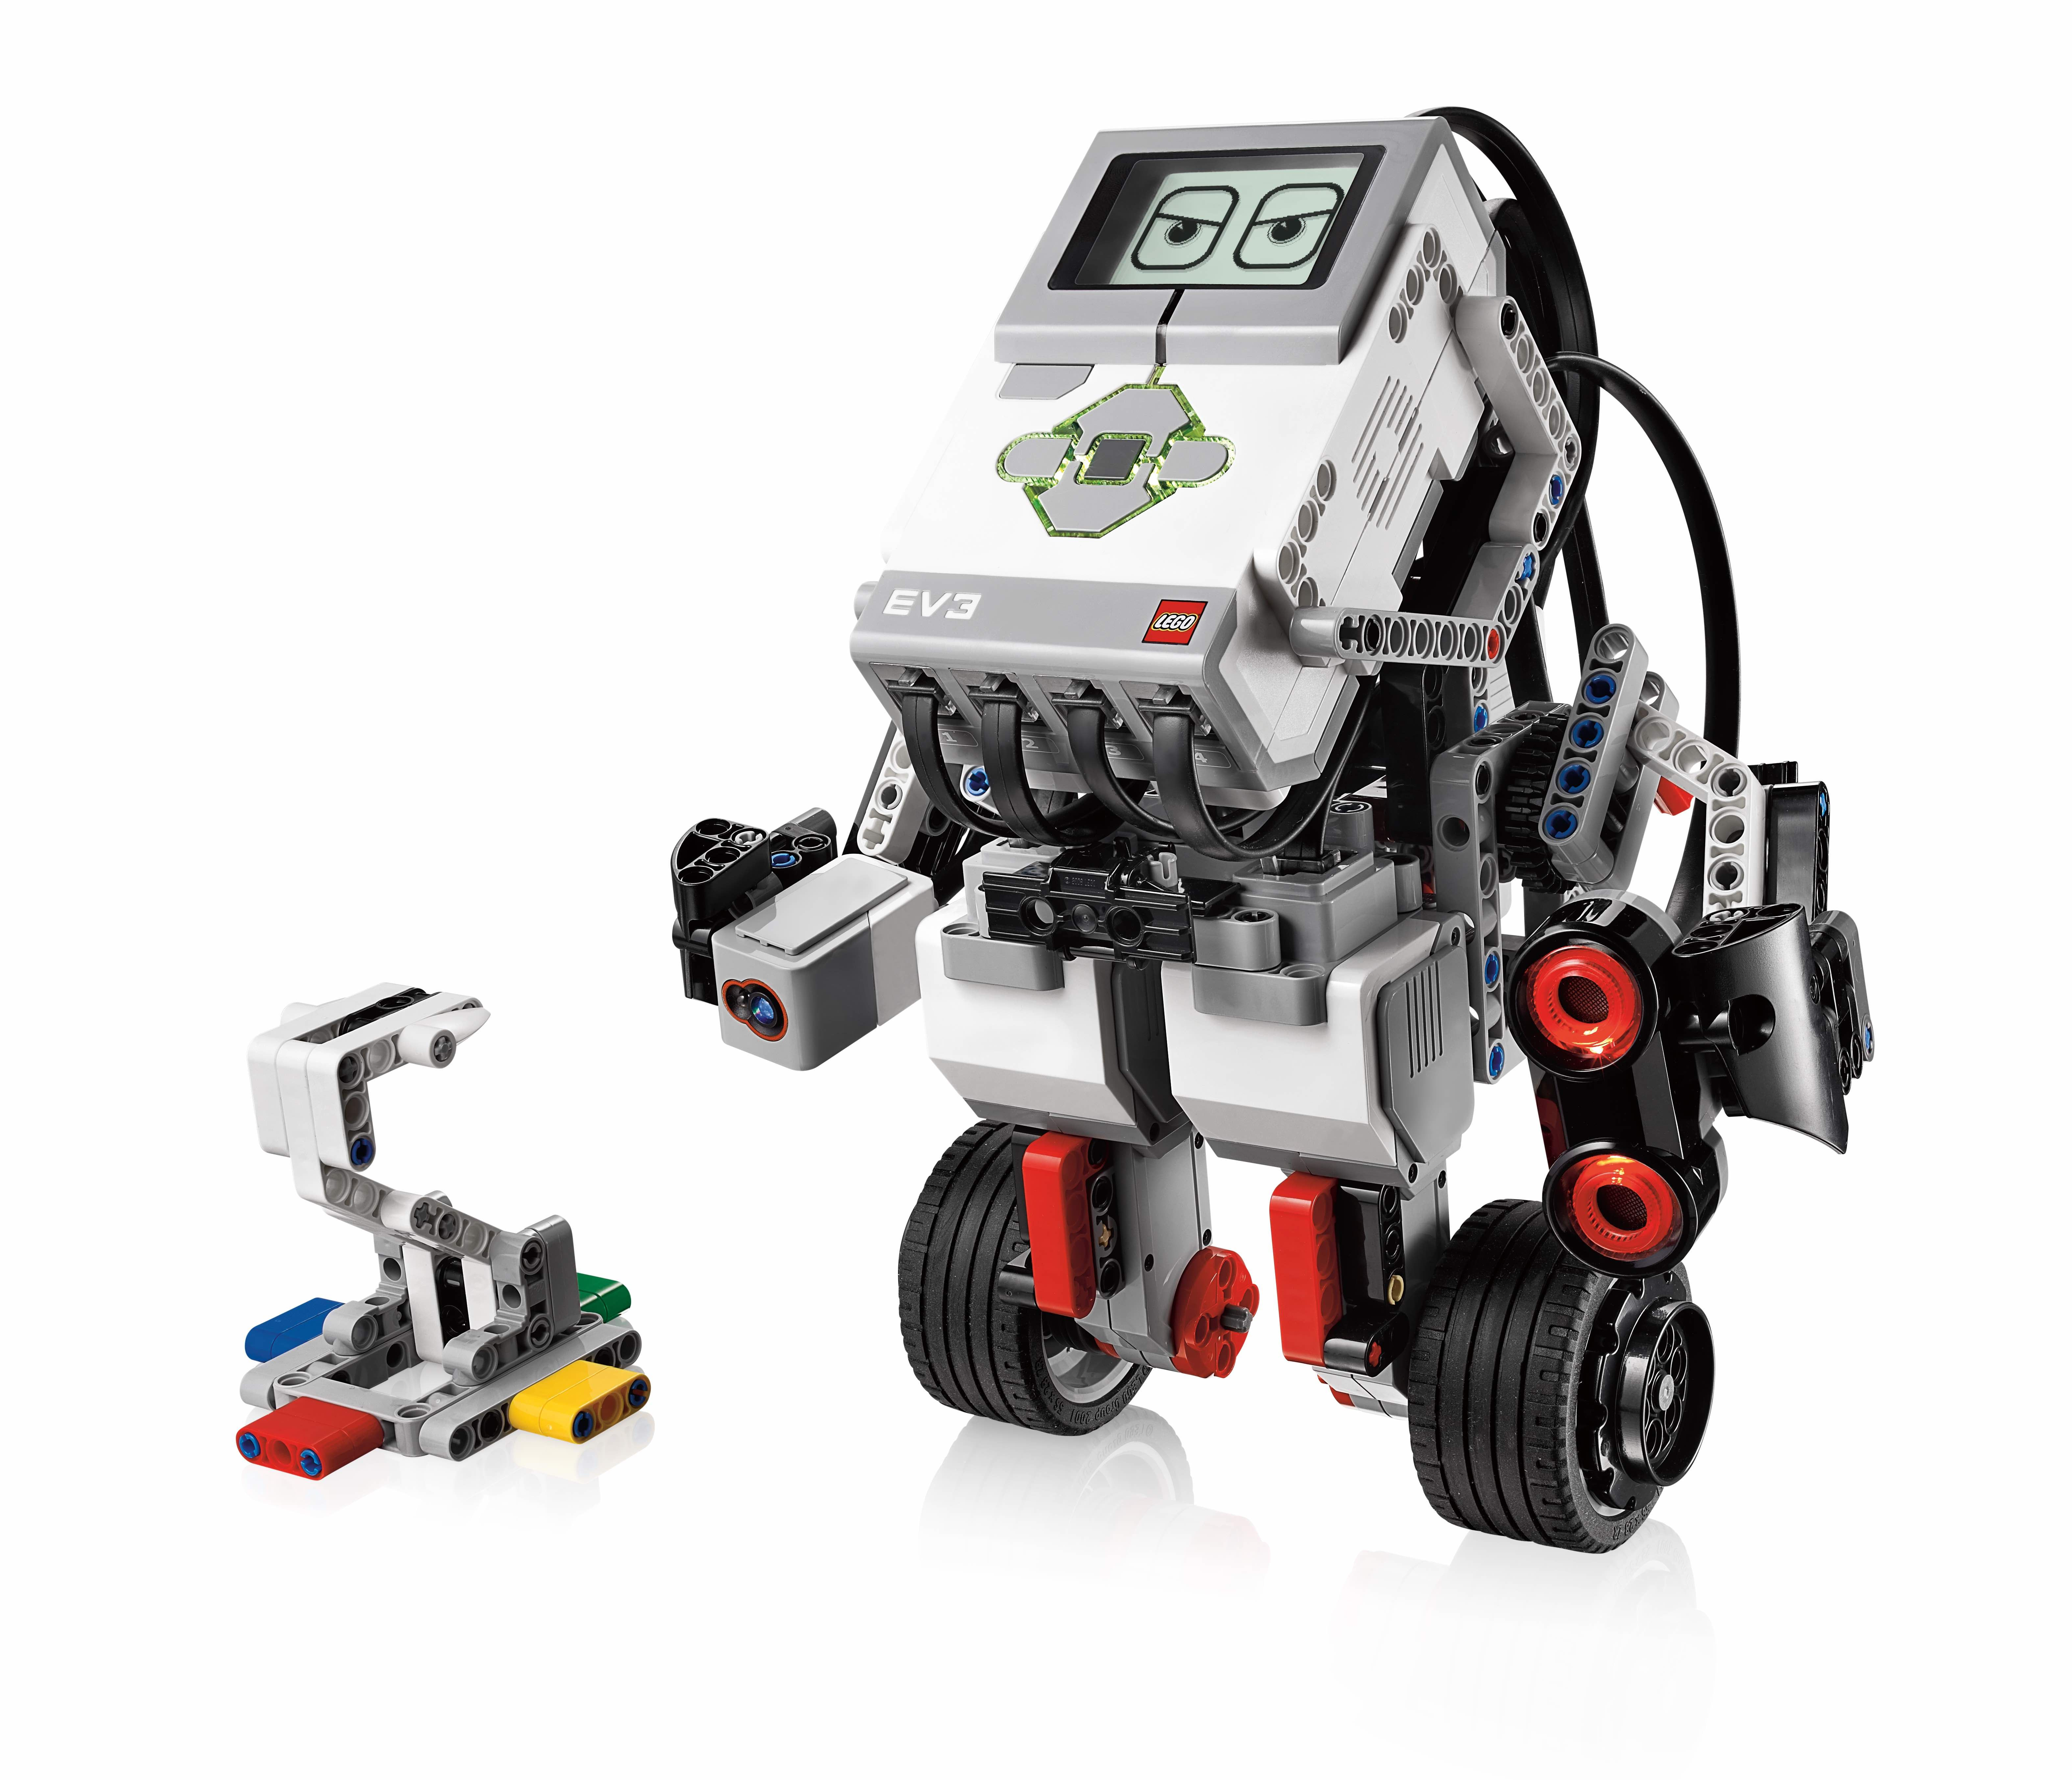 LEGO Mindstorms EV3 education